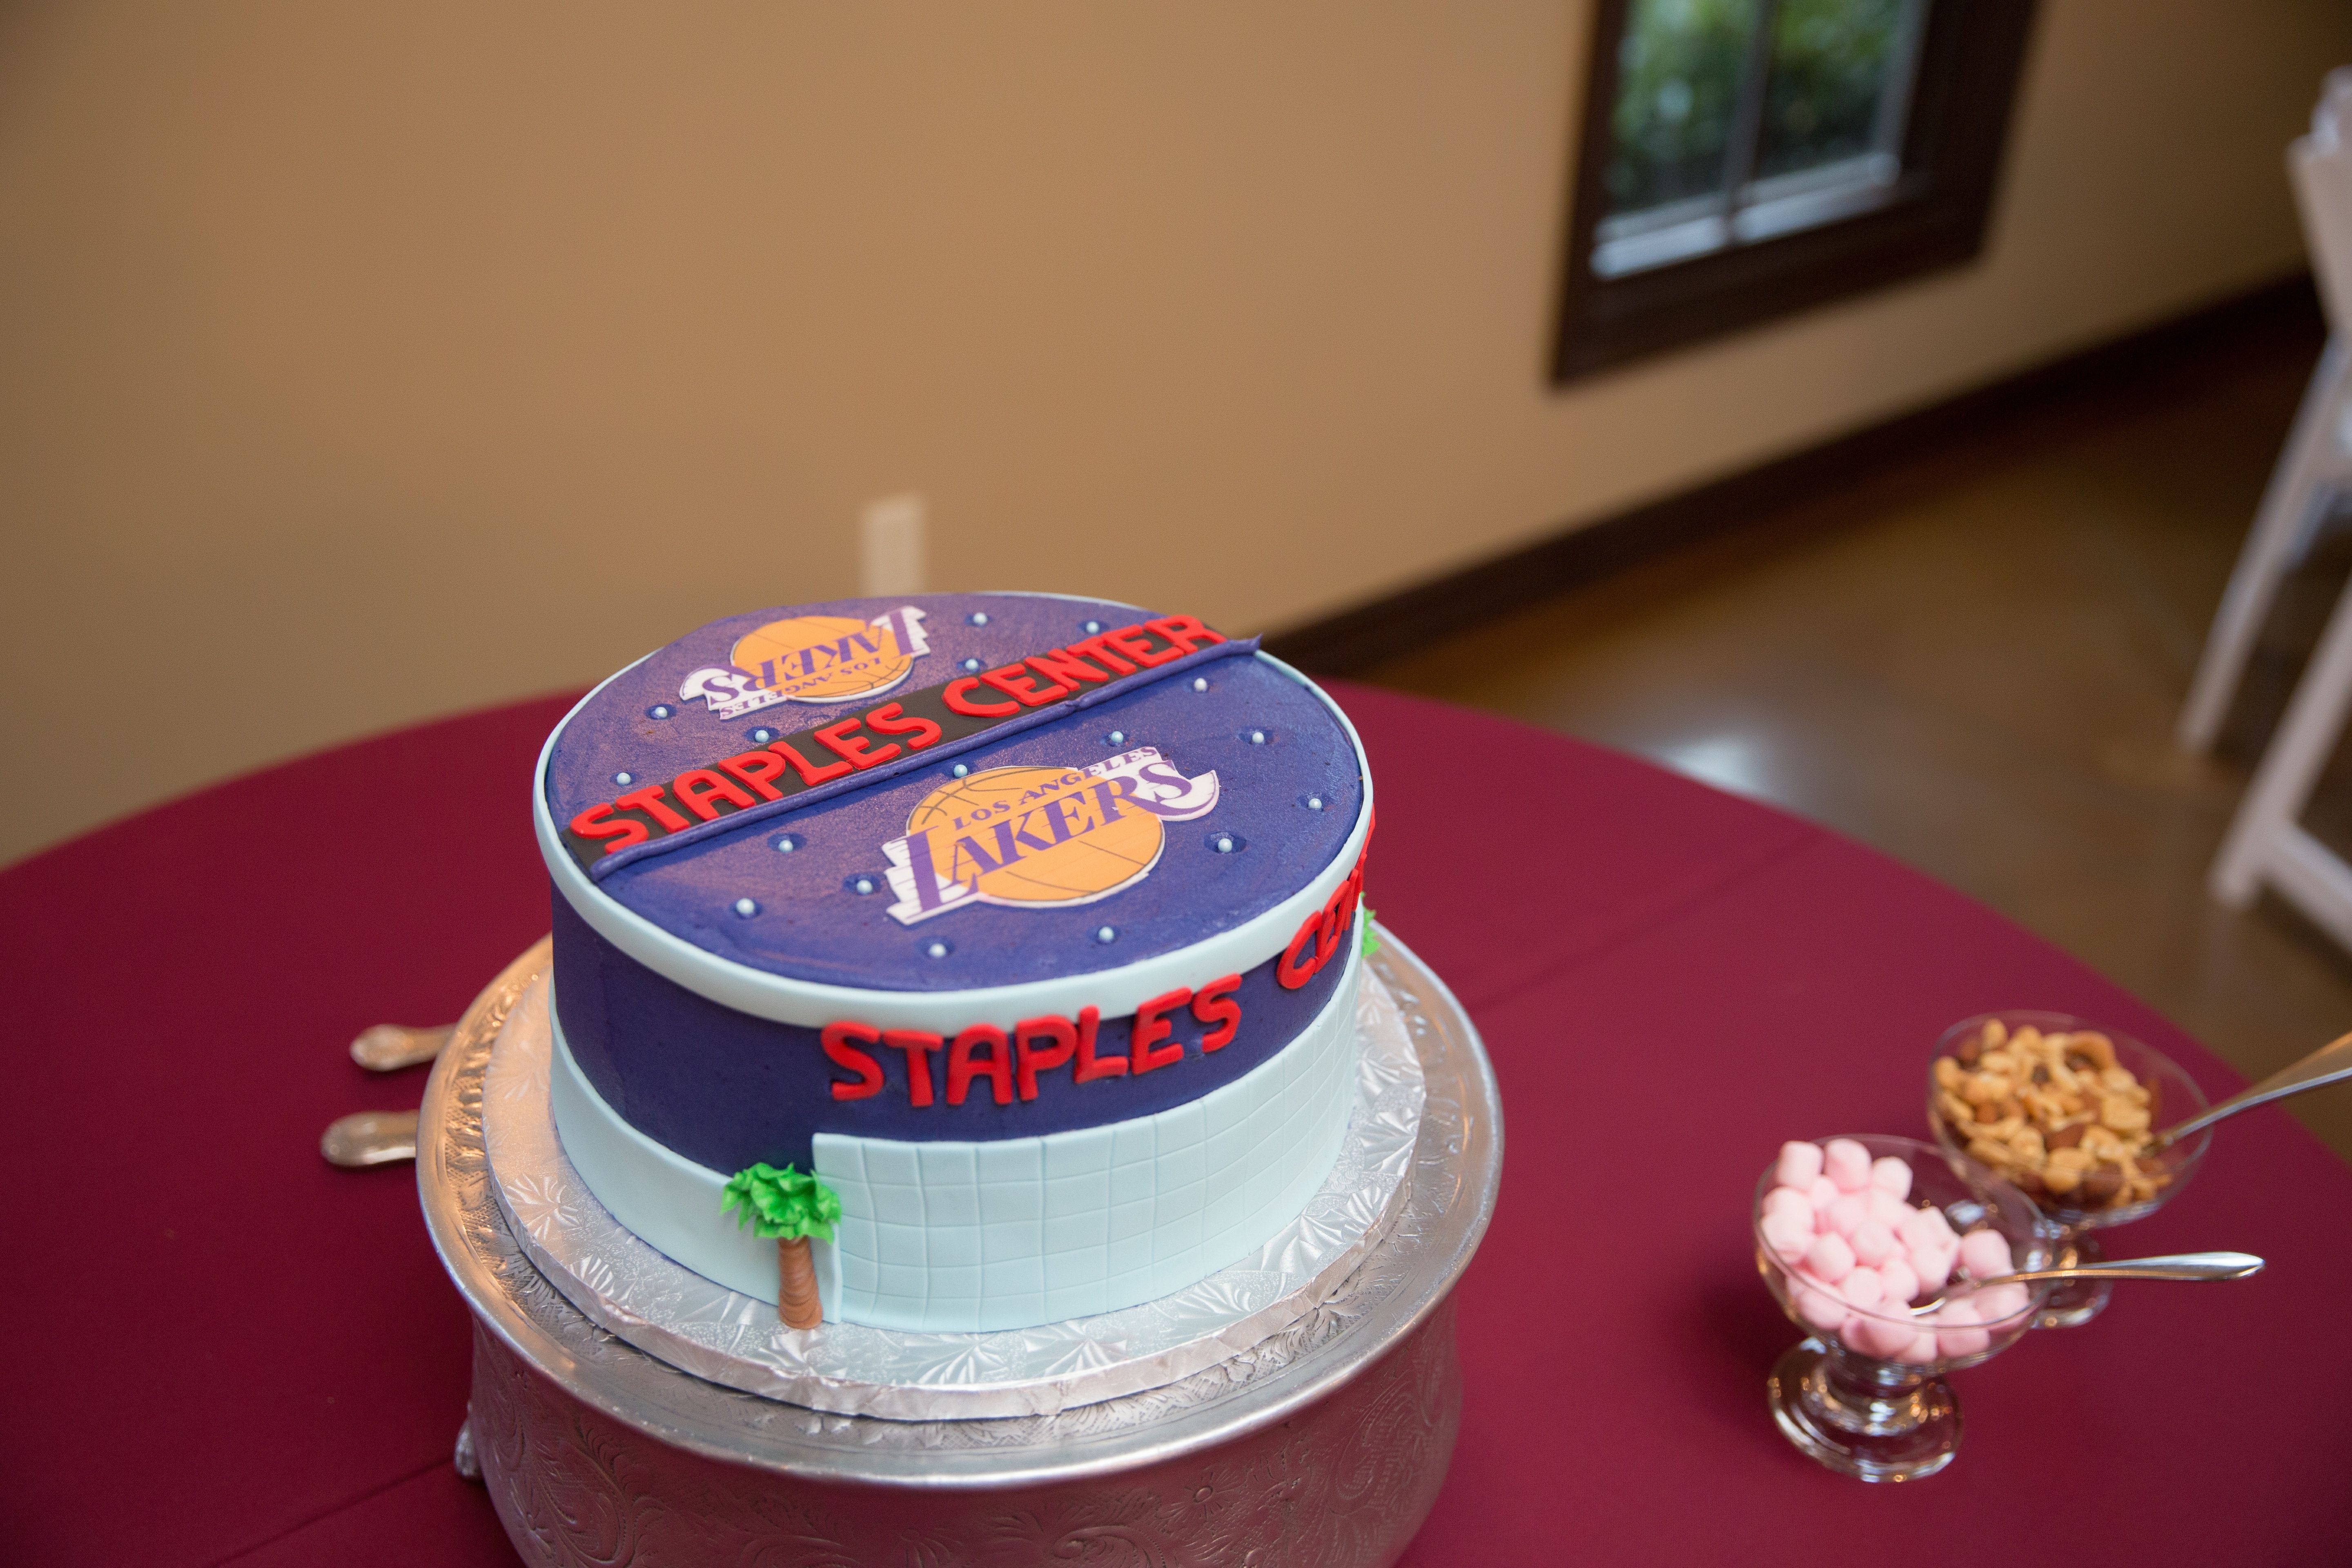 La Lakers Staples Center Themed Grooms Cake By Icing On The Top Venue